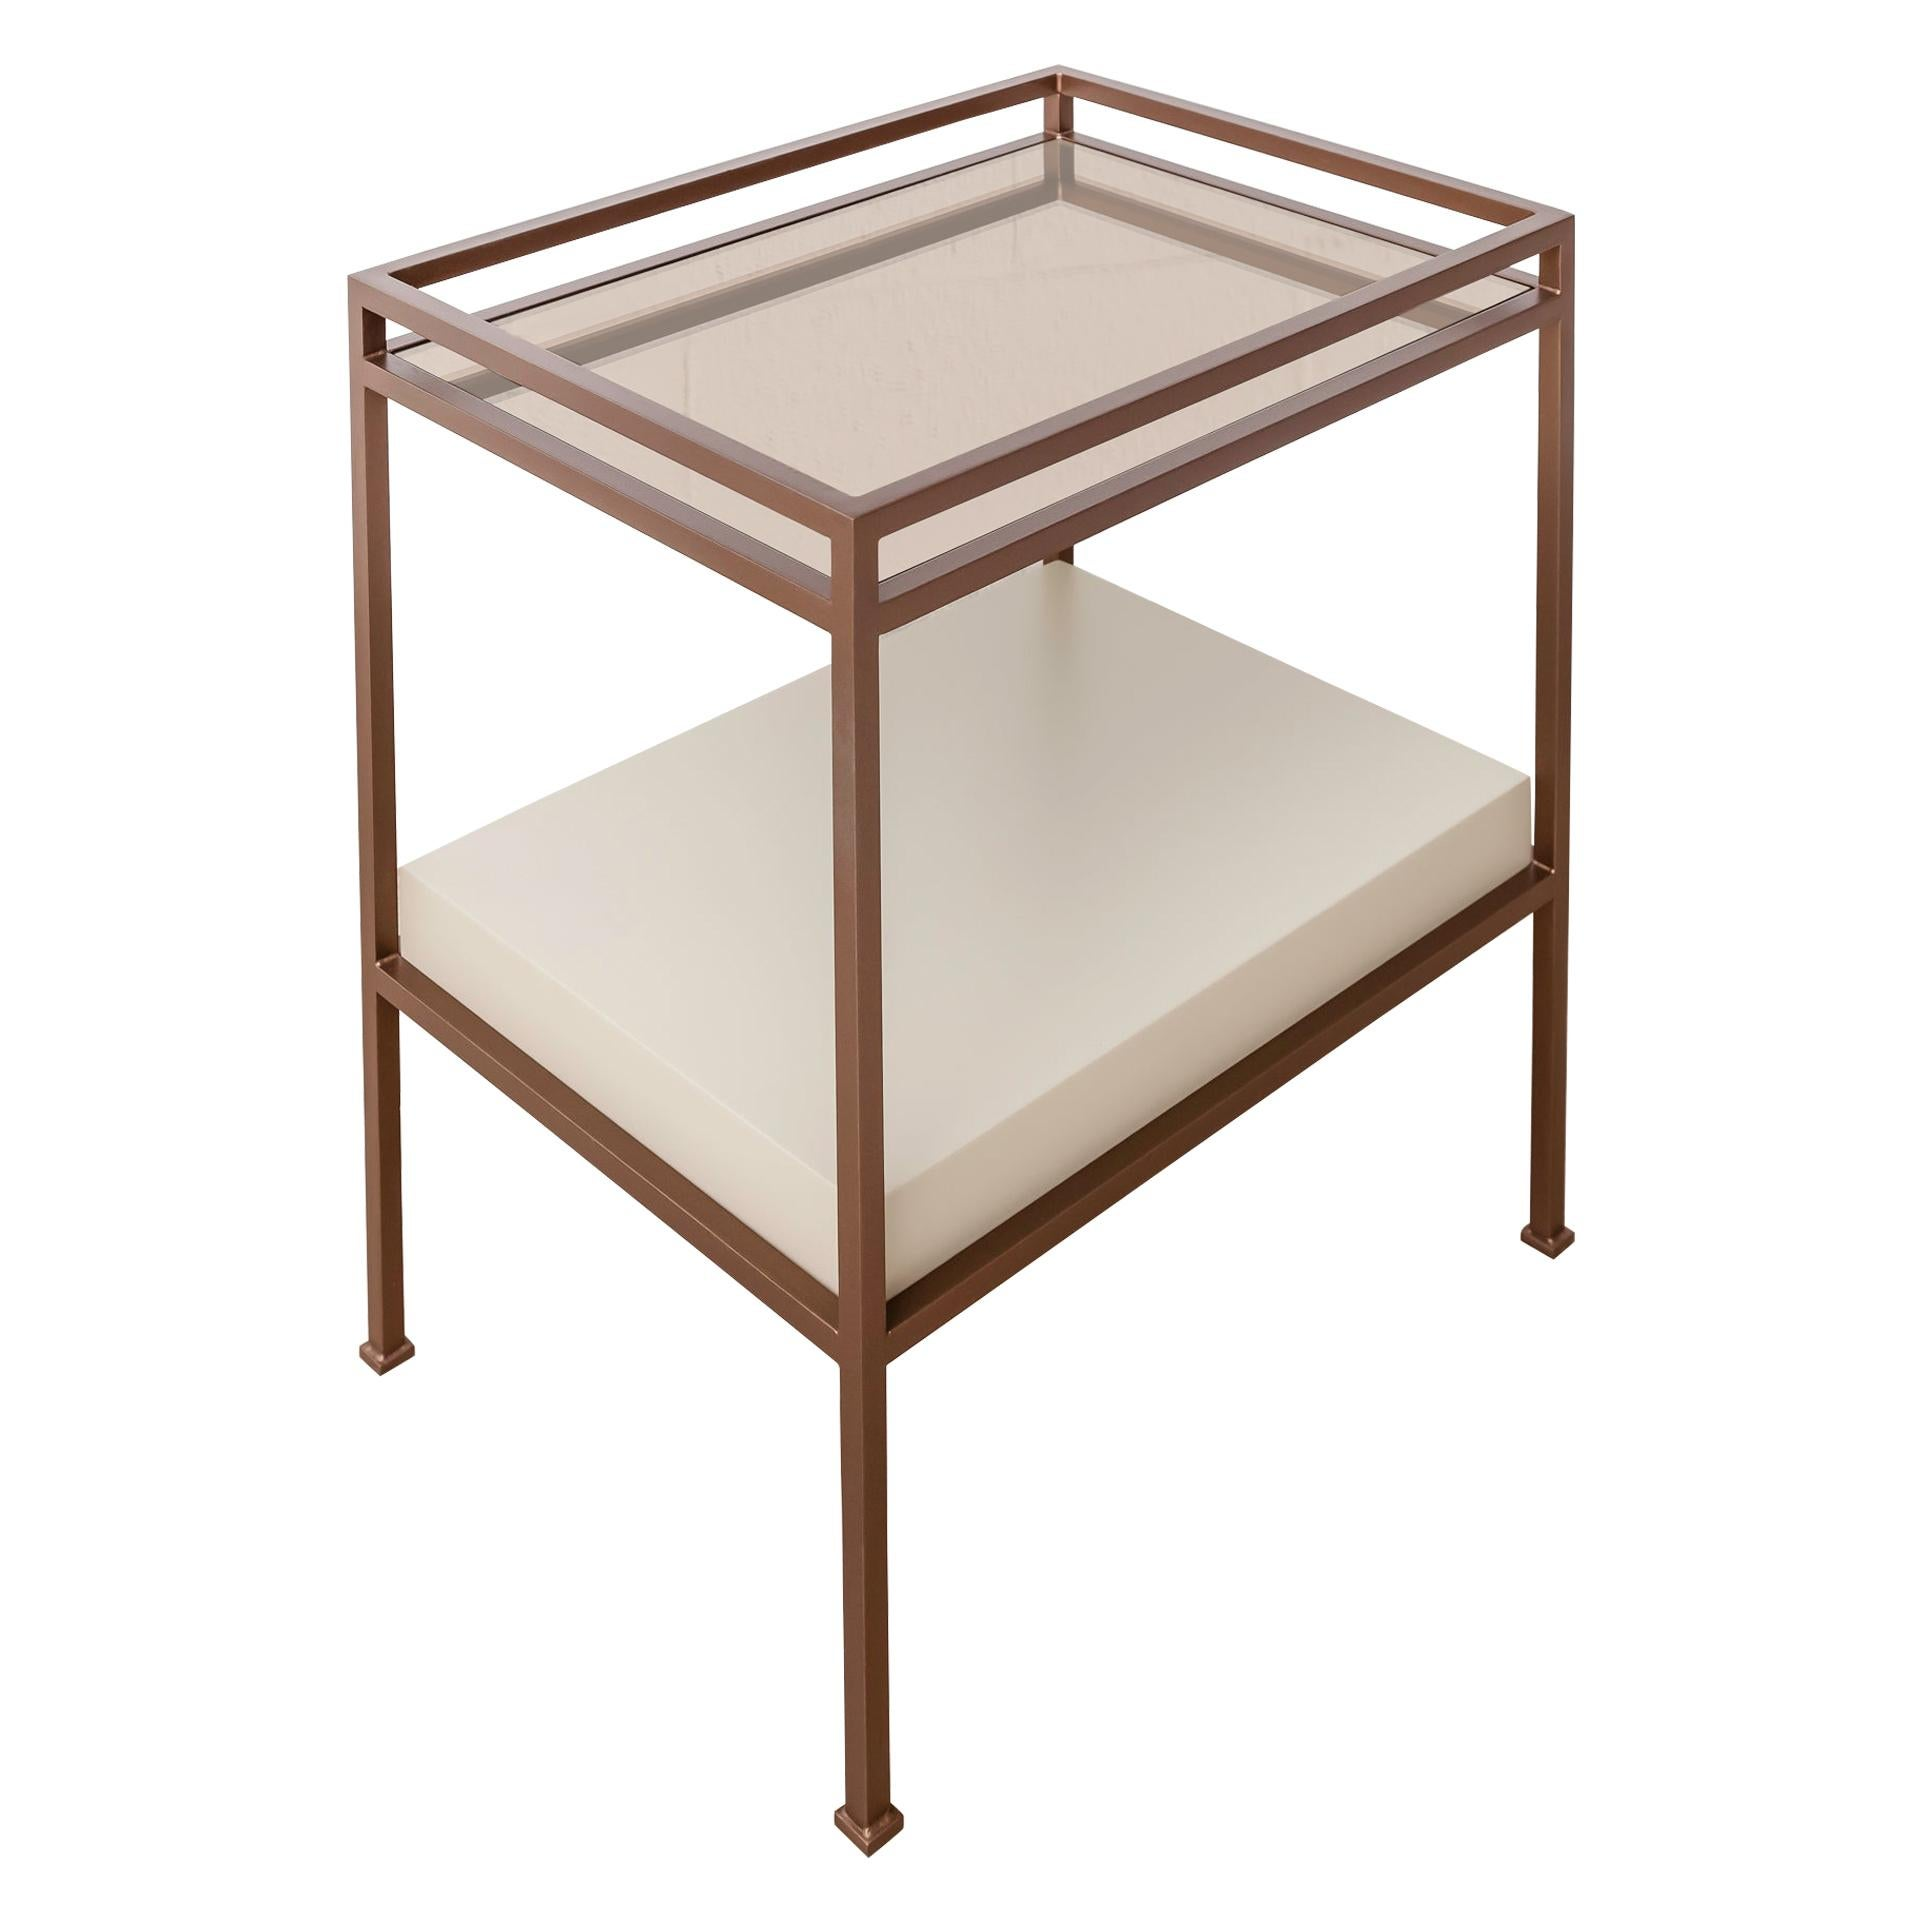 Customizable Contemporary Side Table - Bar Table by Carbonell Design